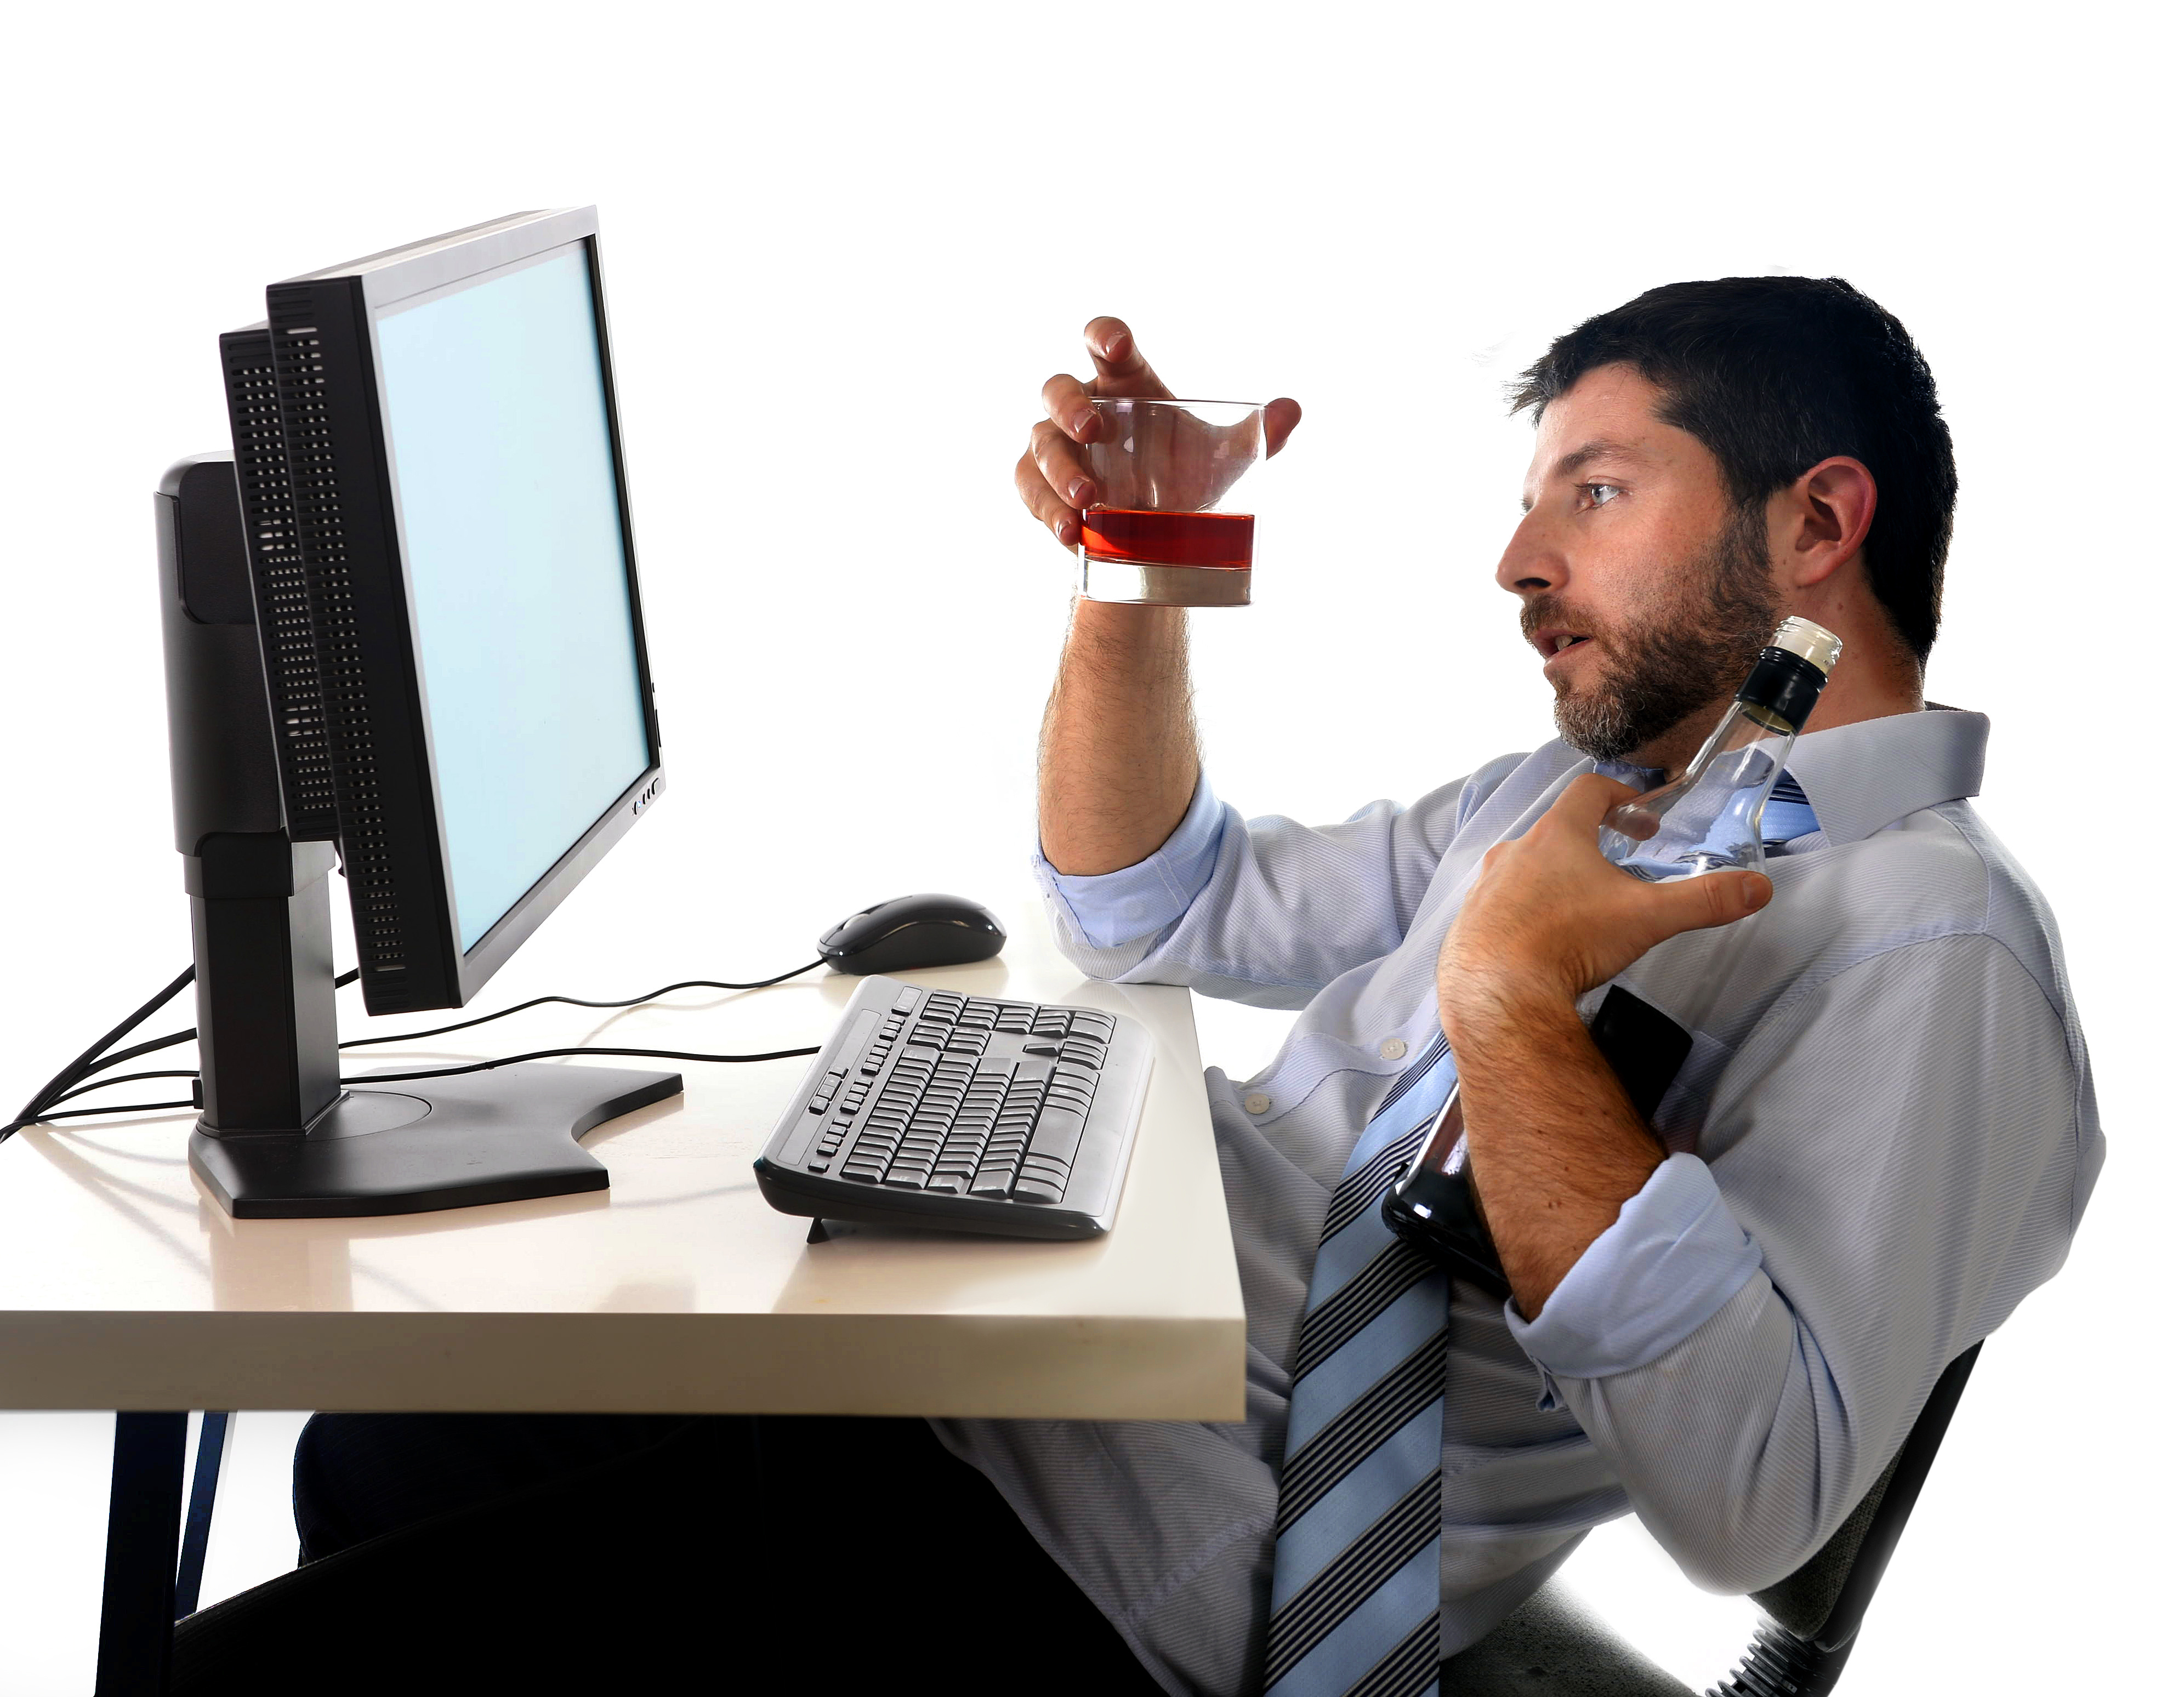 alcoholic business man sitting drunk at office with computer